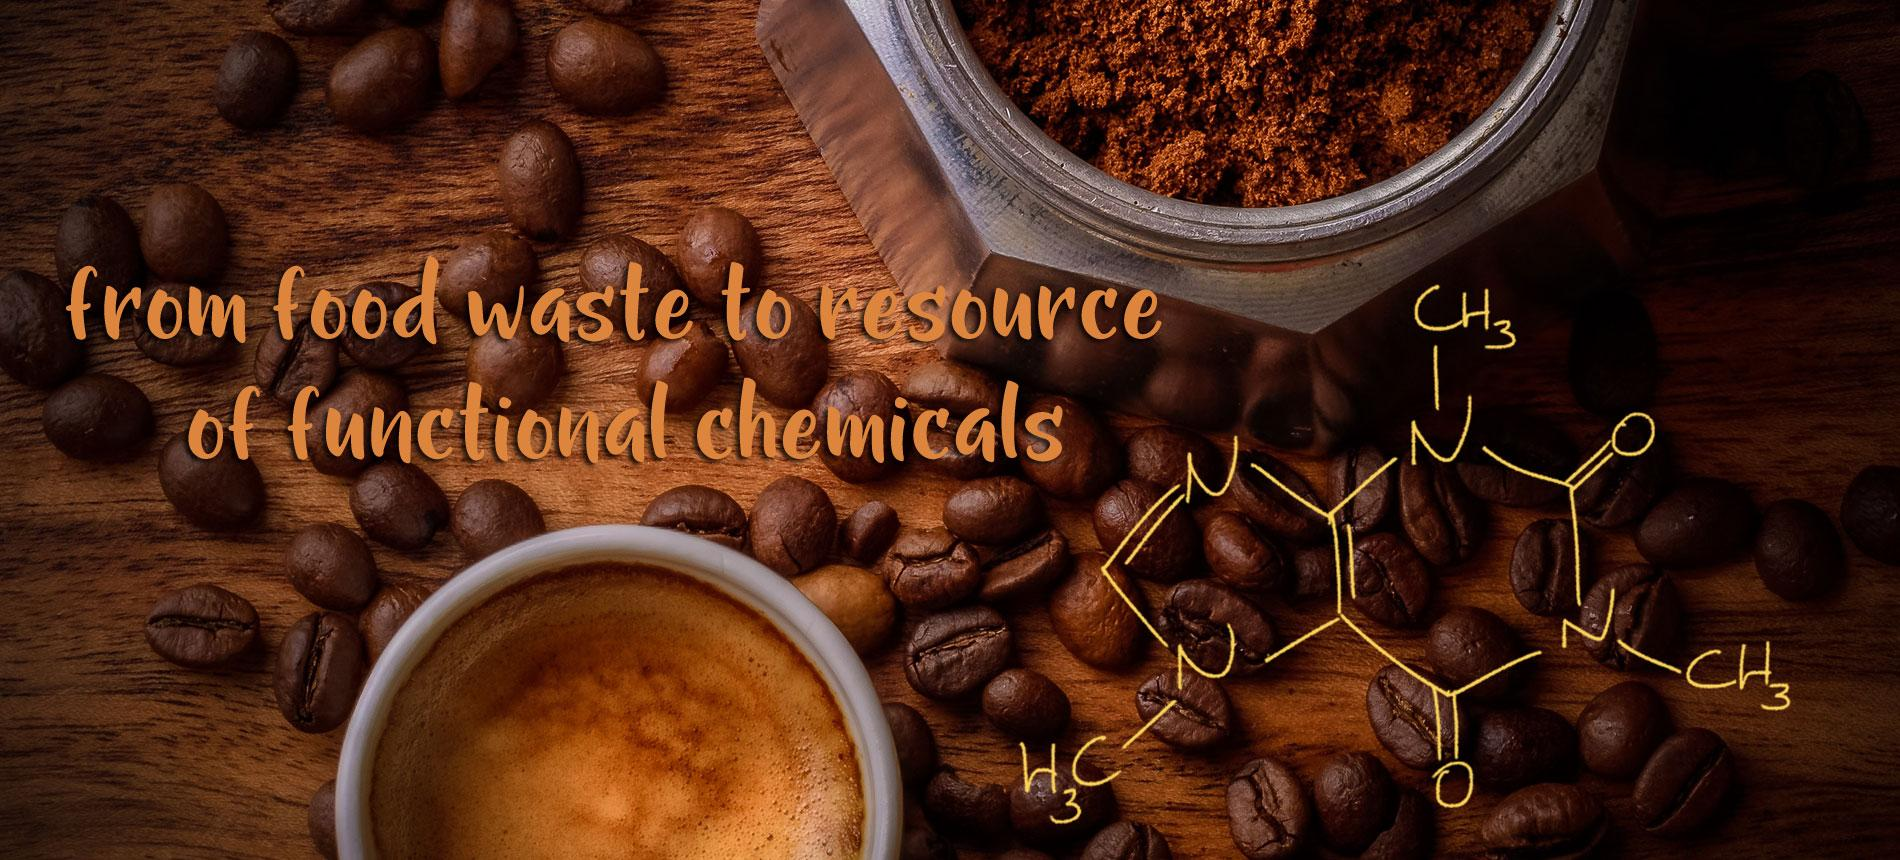 FROM WASTE TO RESOURCE OF FUNCTIONAL CHEMICALS